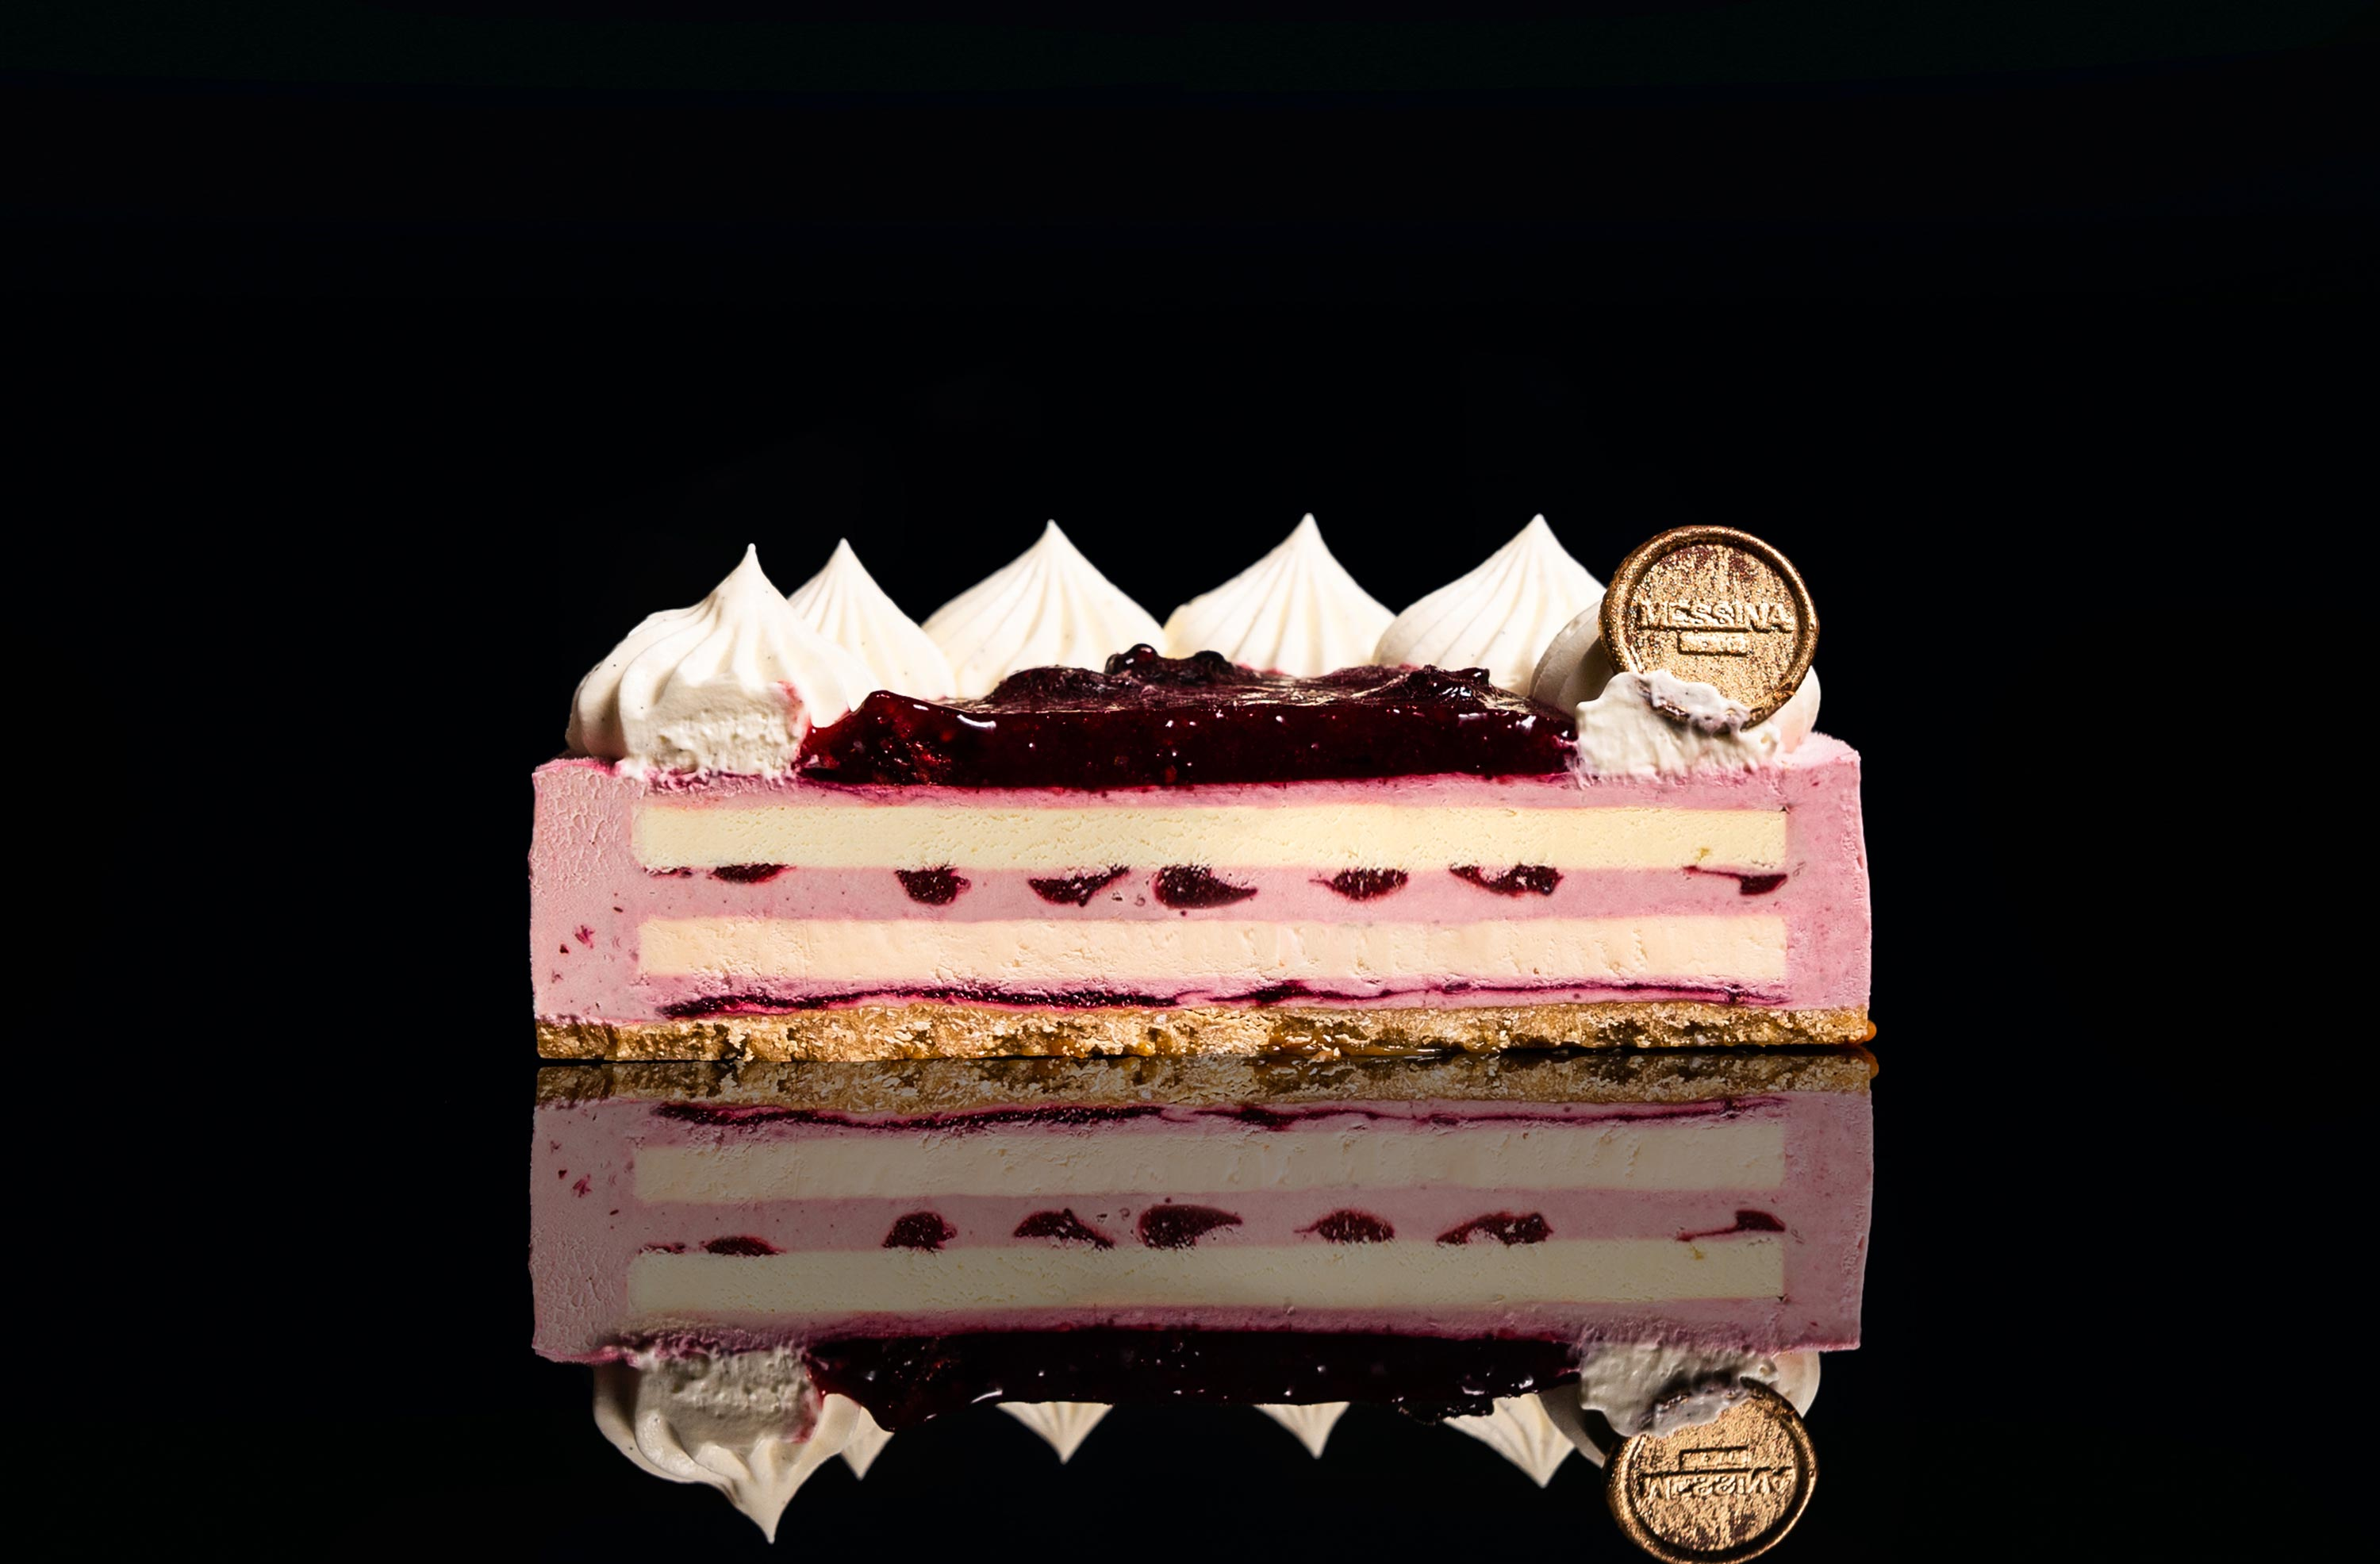 An image of Gelato Messina's Boysenberry Cheesecake cross section.